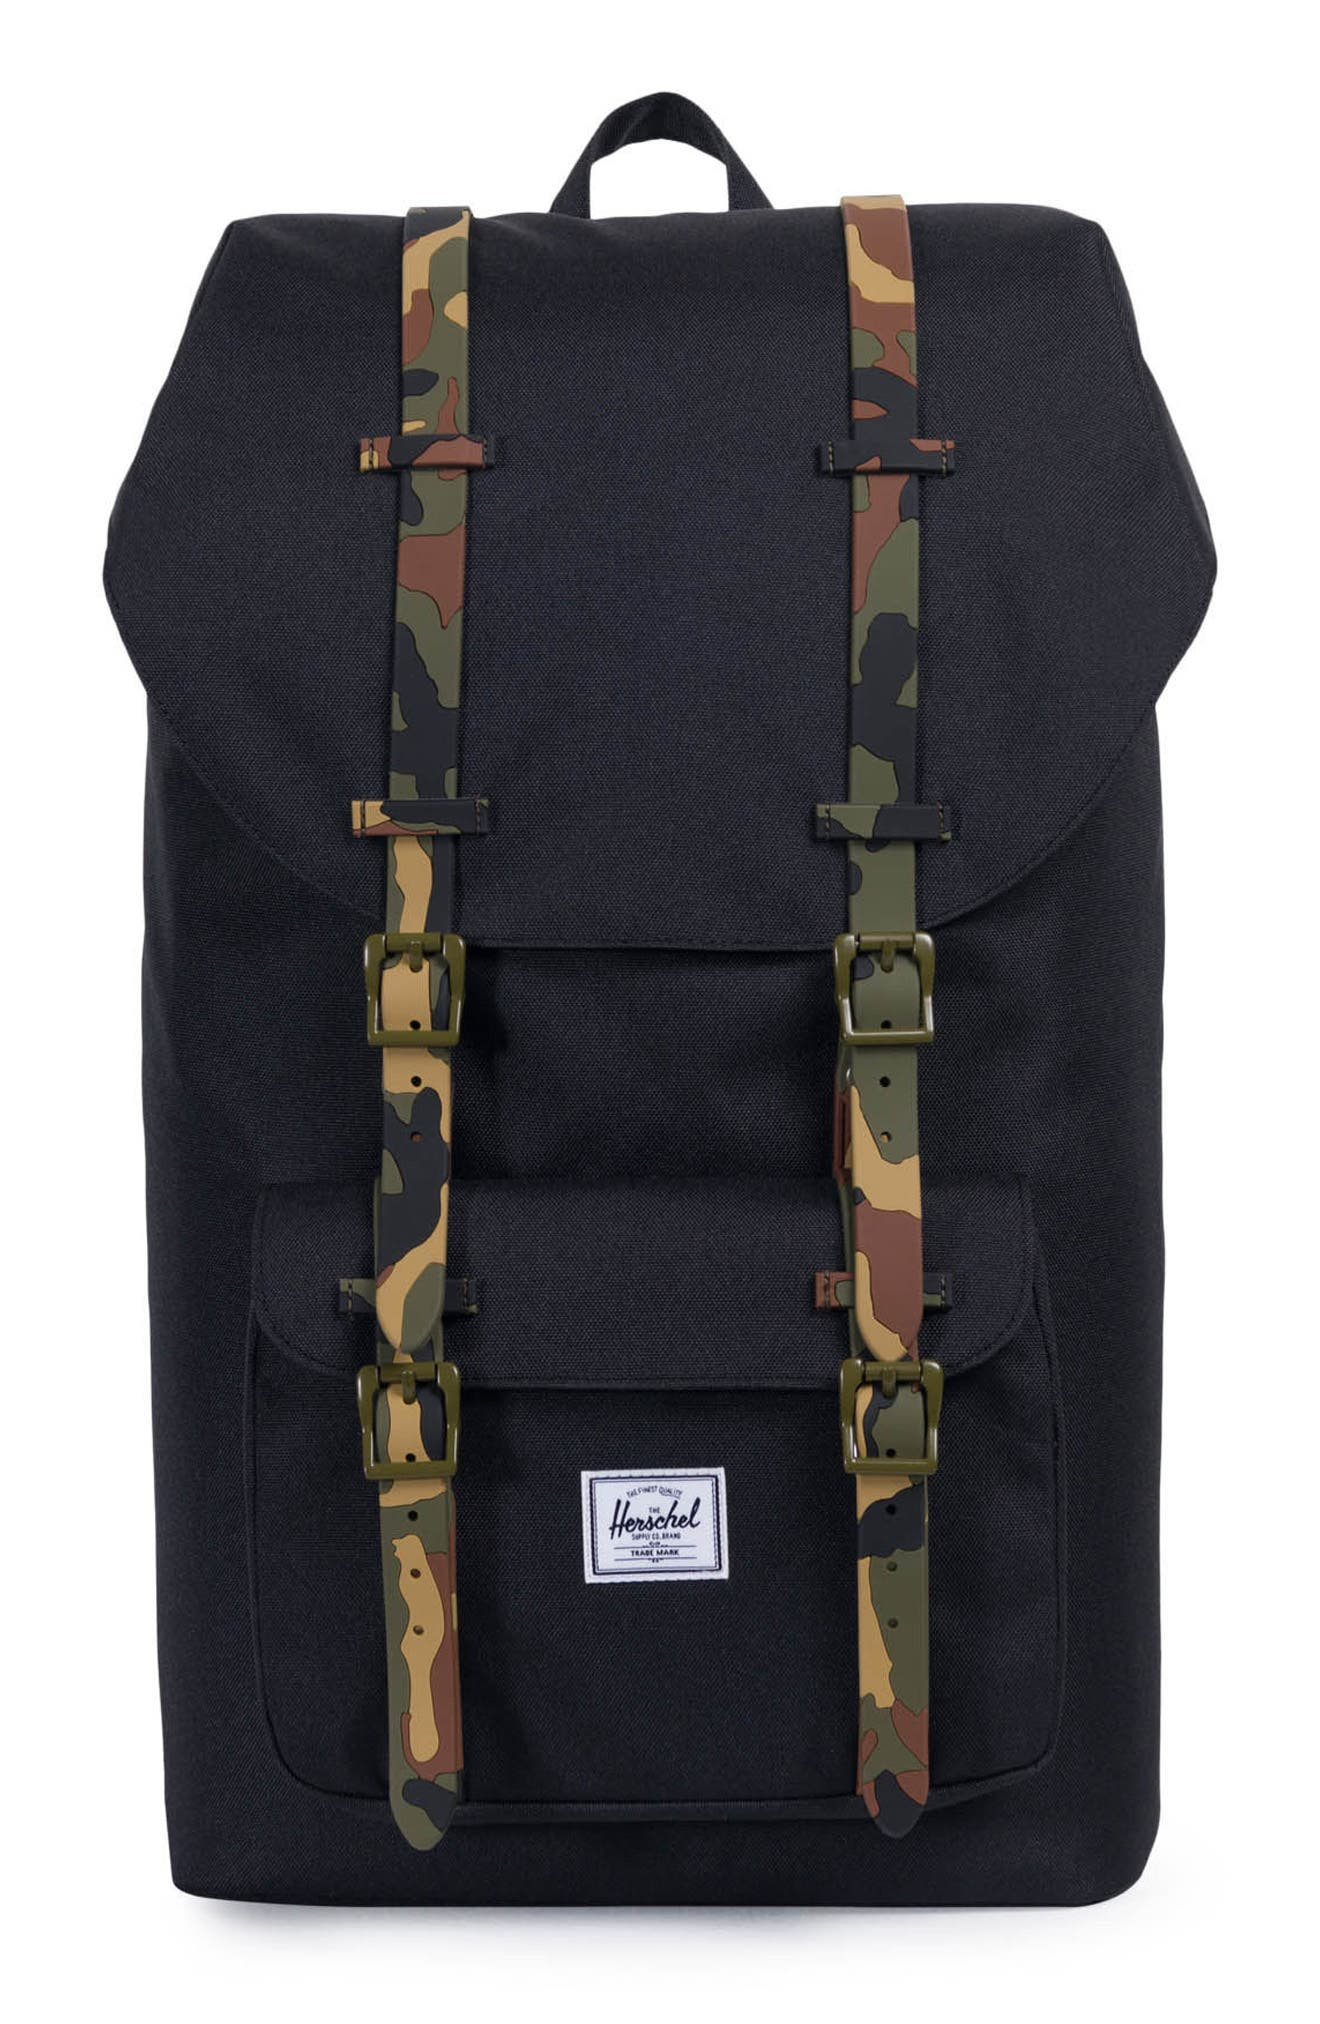 Little America Backpack,                             Main thumbnail 1, color,                             009